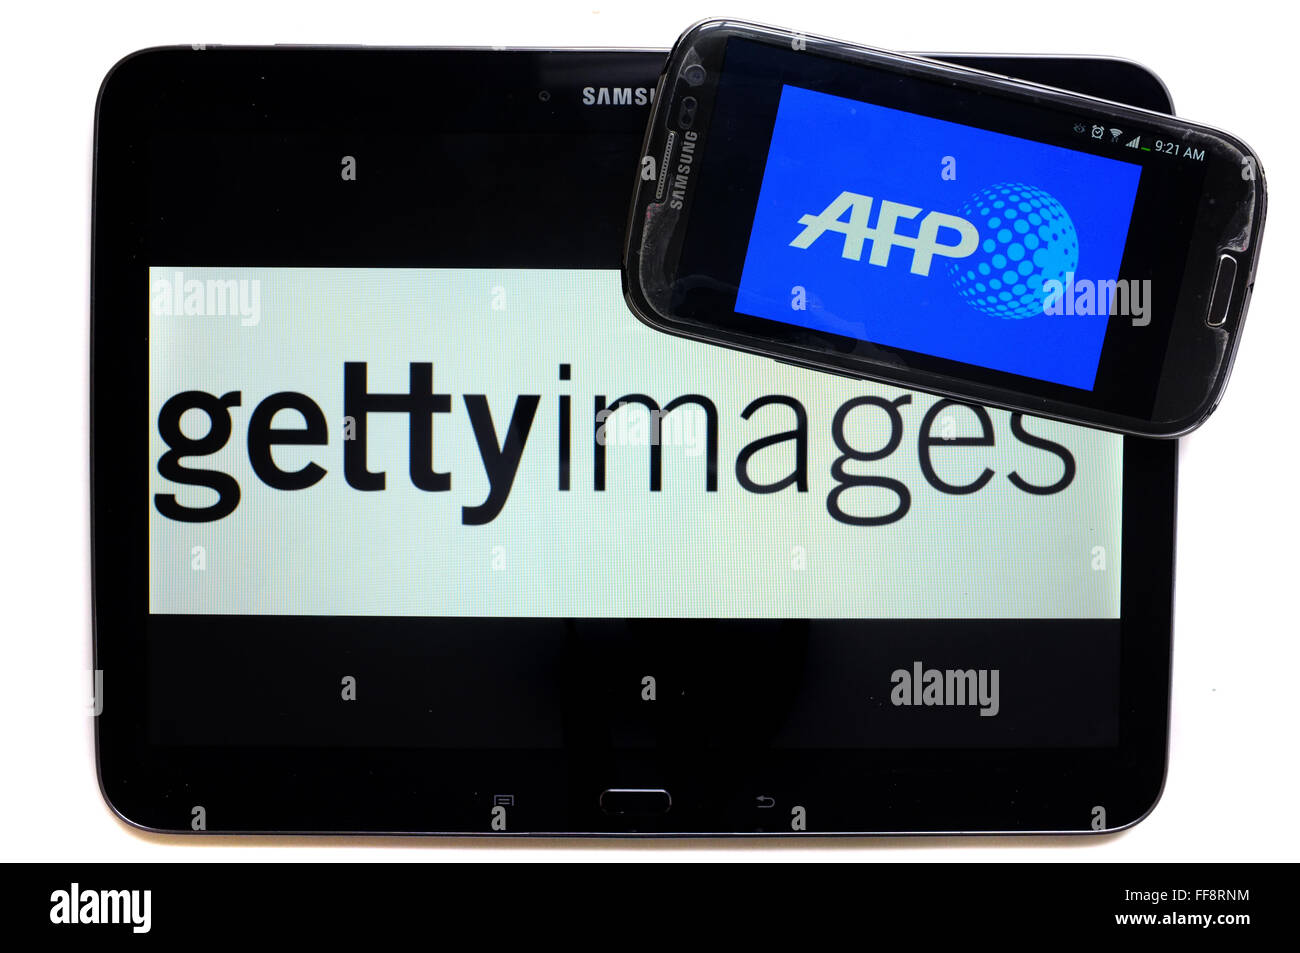 The news agencies AFP and getty images on the screens of a tablet and a smartphone photographed against a white - Stock Image